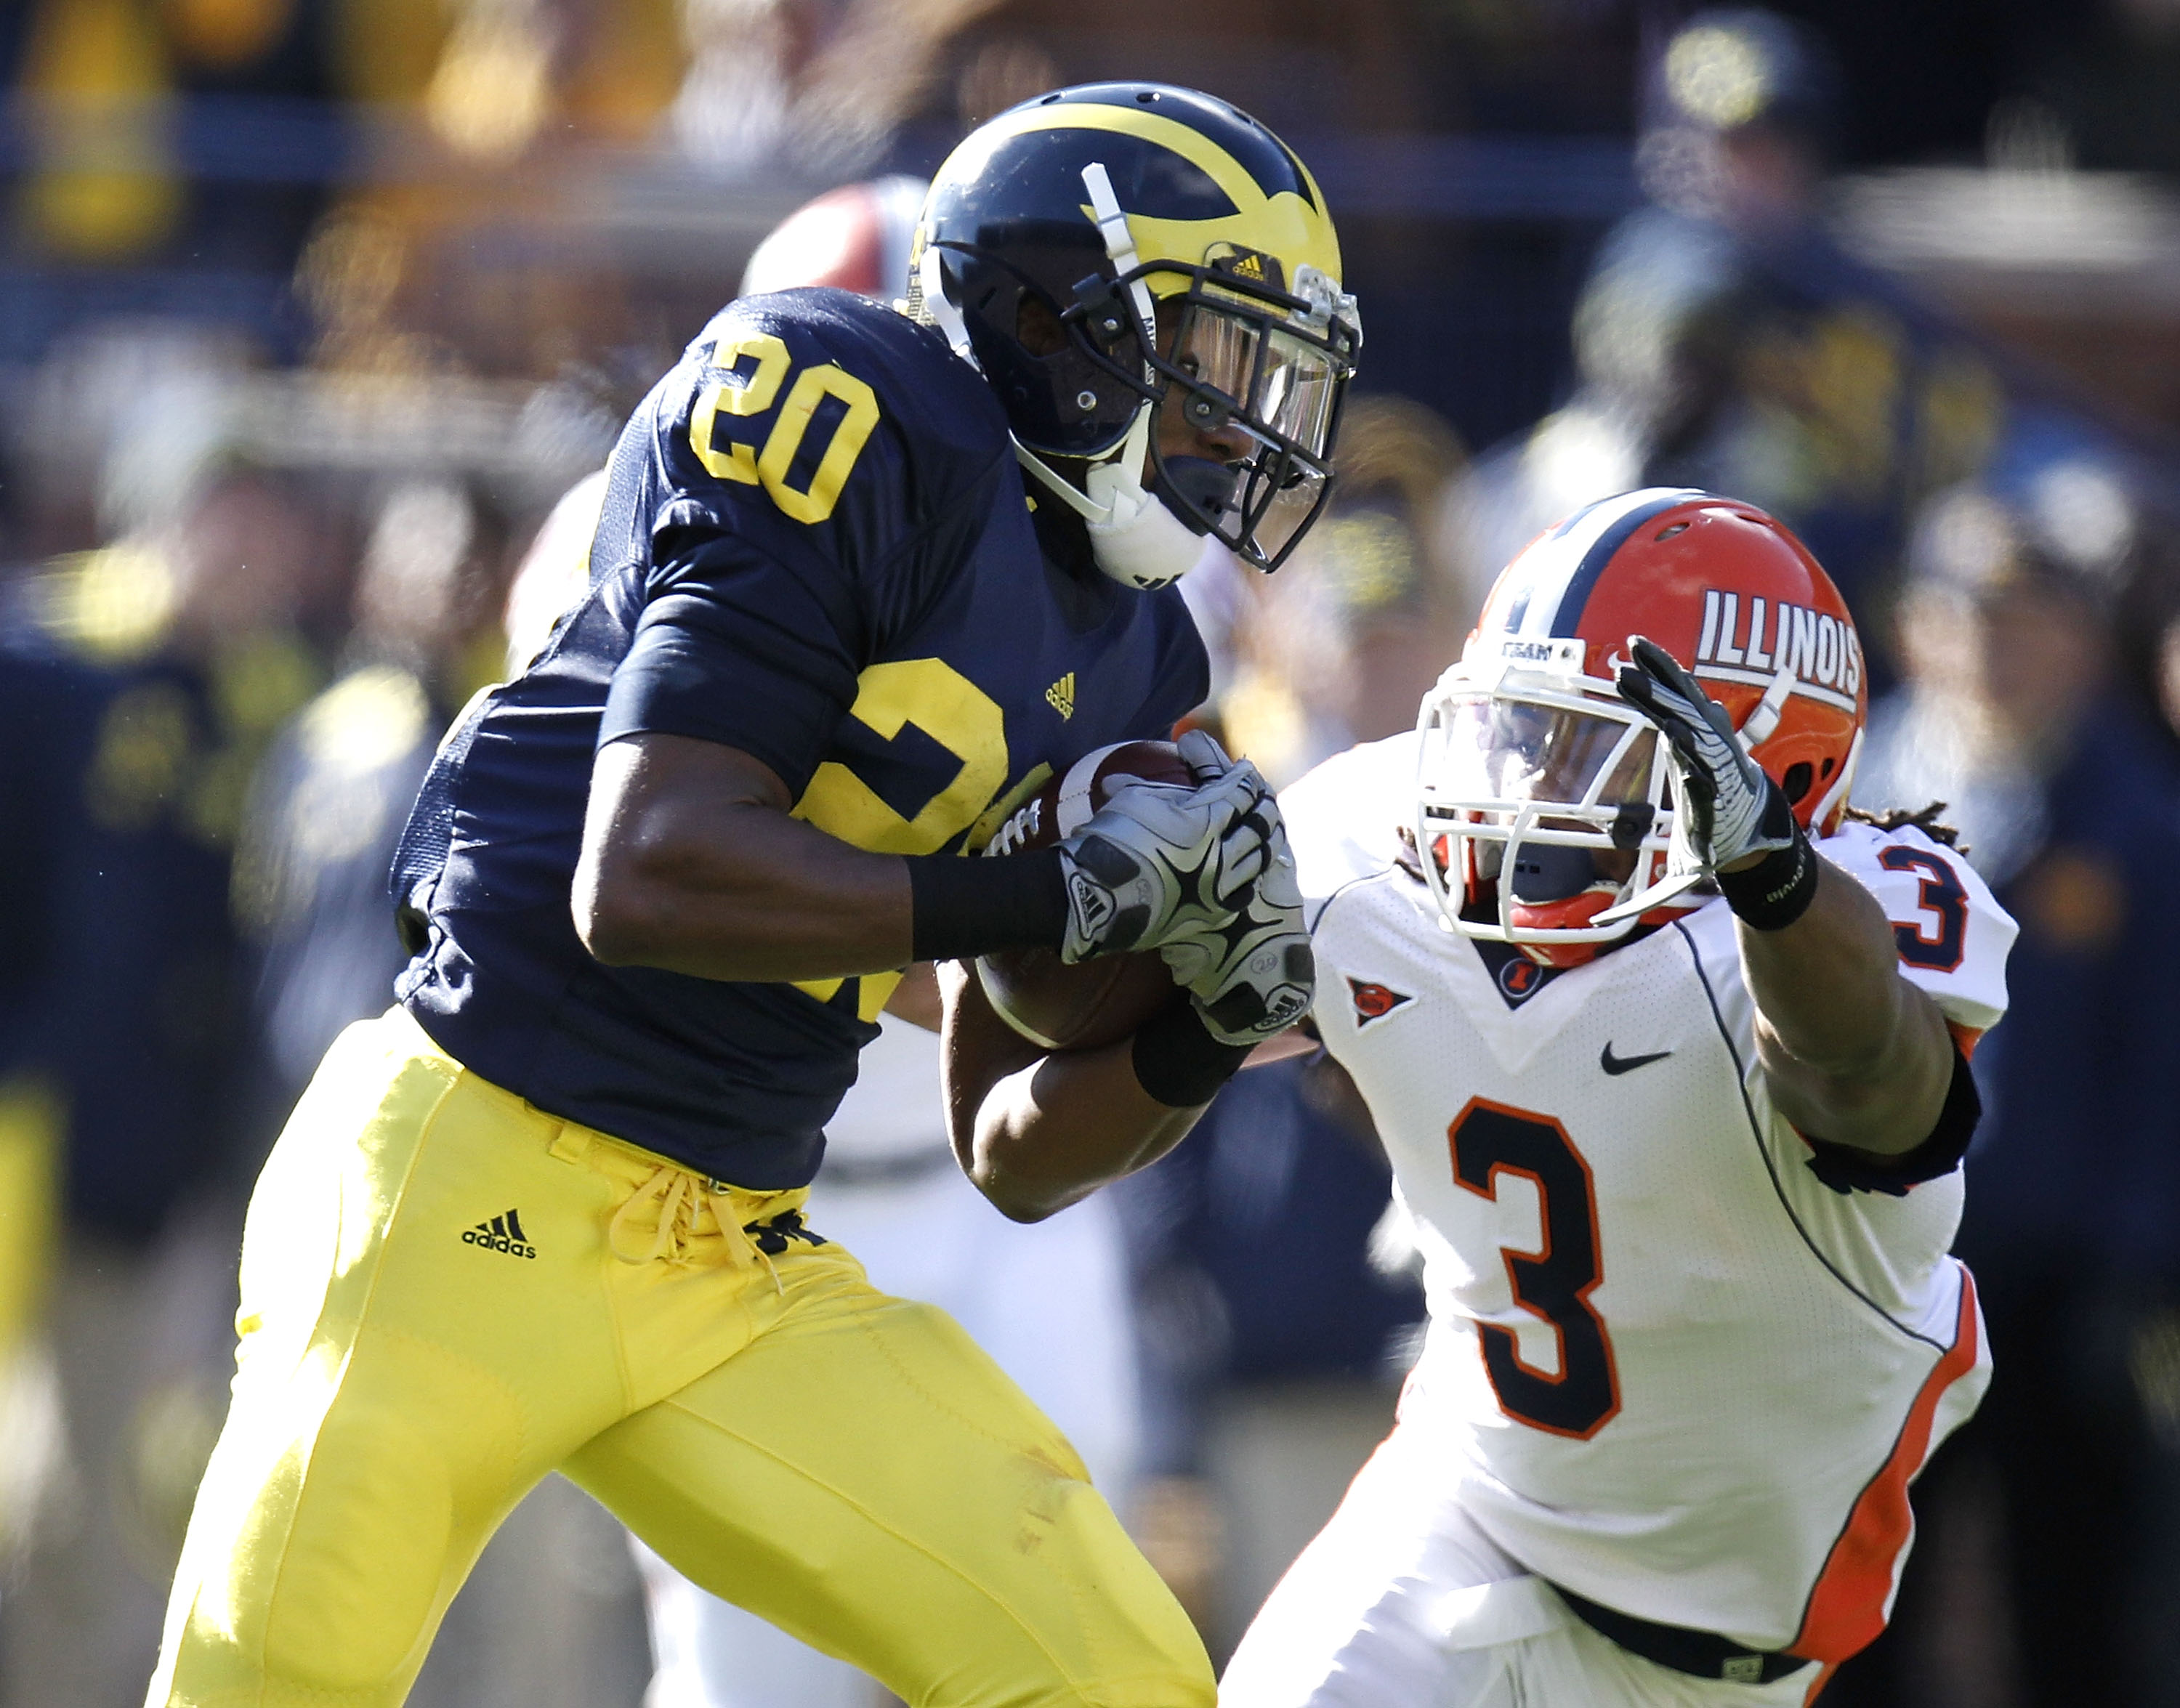 ANN ARBOR, MI - NOVEMBER 06:  Michael Shaw #20 of the Michigan Wolverines runs for a third quarter touchdown around the tackle of Tavon Wilson #3 of the Illinios Fighting Illini at Michigan Stadium on November 6, 2010 in Ann Arbor, Michigan. Michigan won